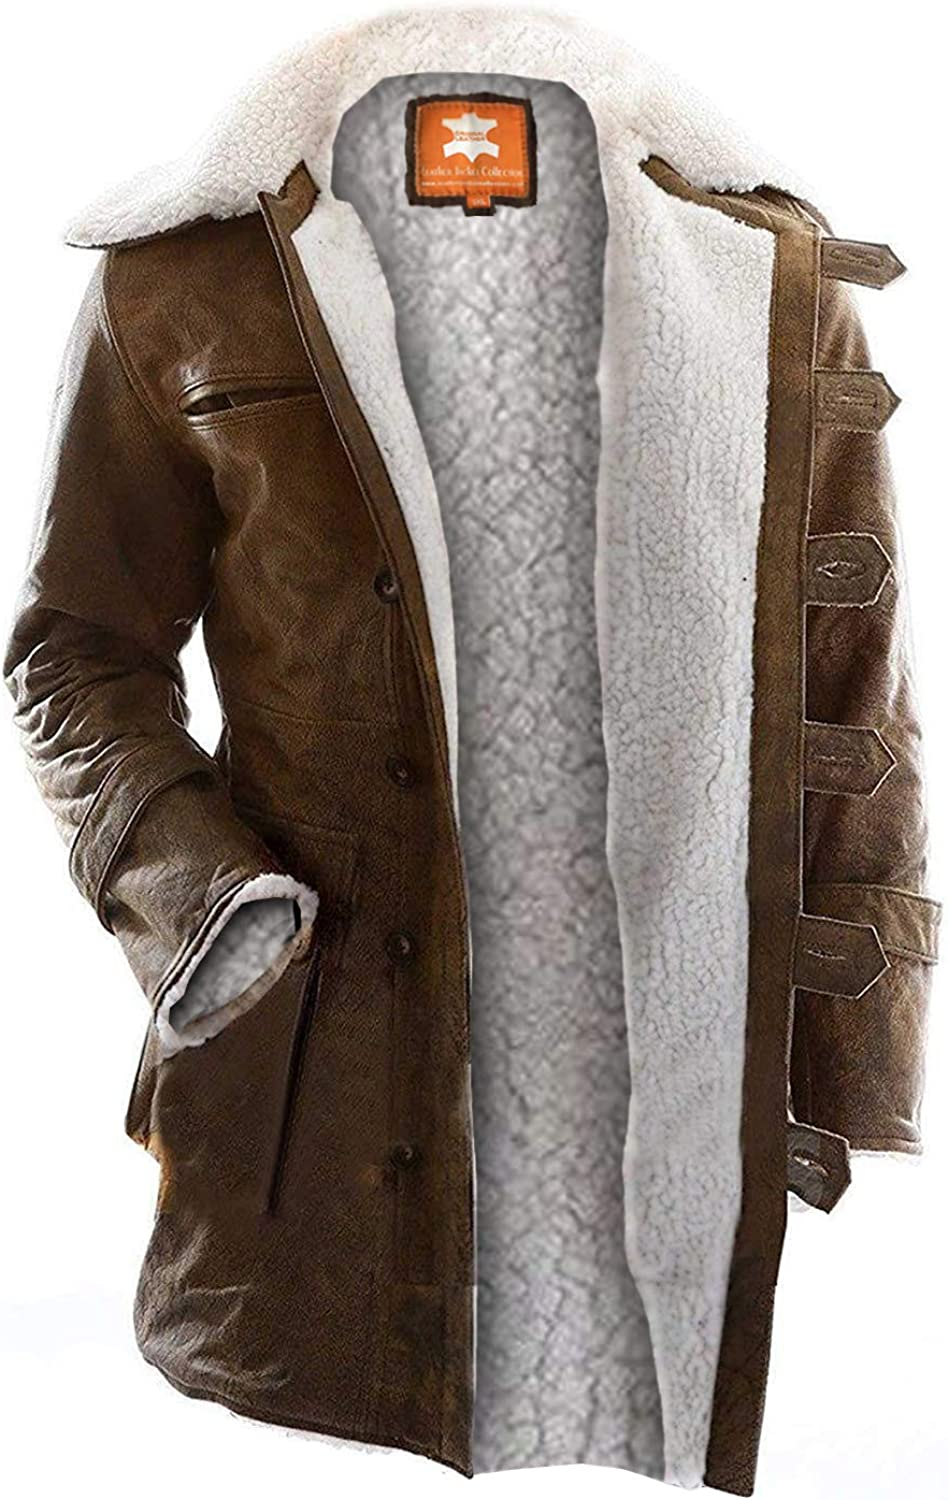 Tom Put Hard Work in Designing Original Snuff Leather Sherpa Brown Bane Coat